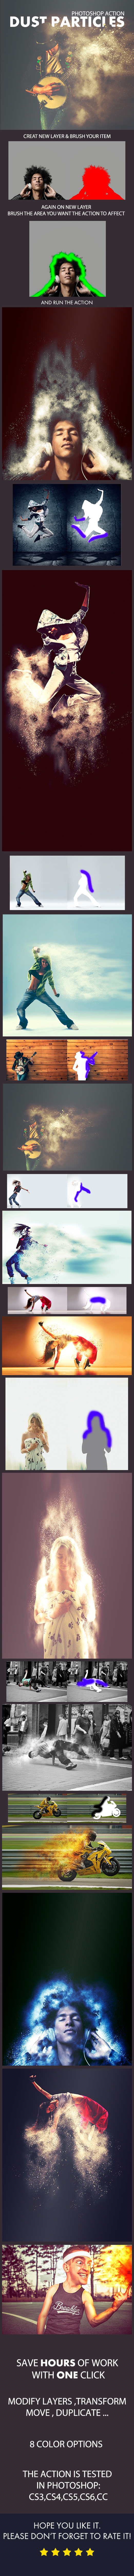 Dust Particles Photoshop Action - Actions Photoshop